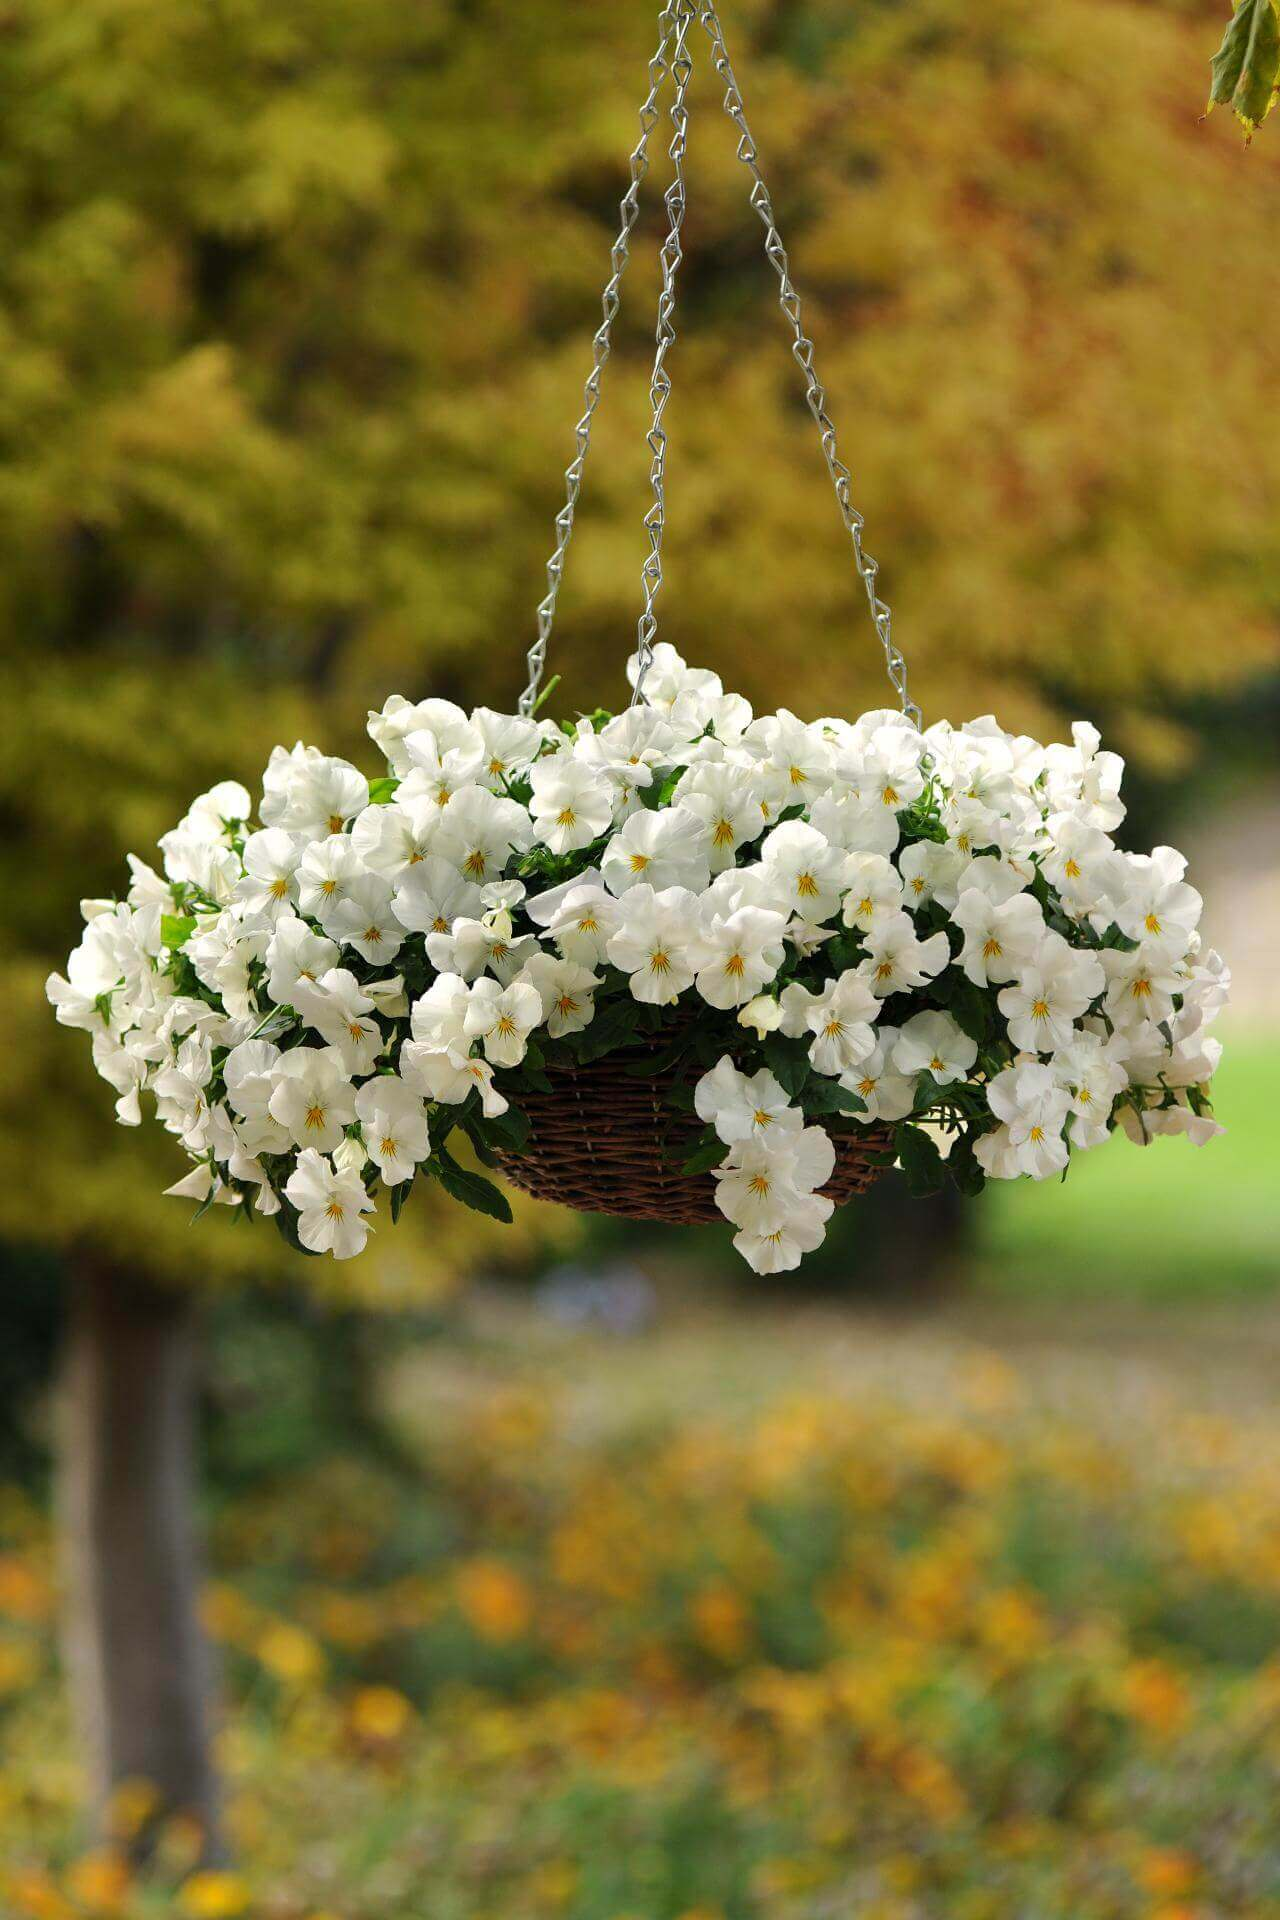 45 Best Outdoor Hanging Planter Ideas And Designs For 2019